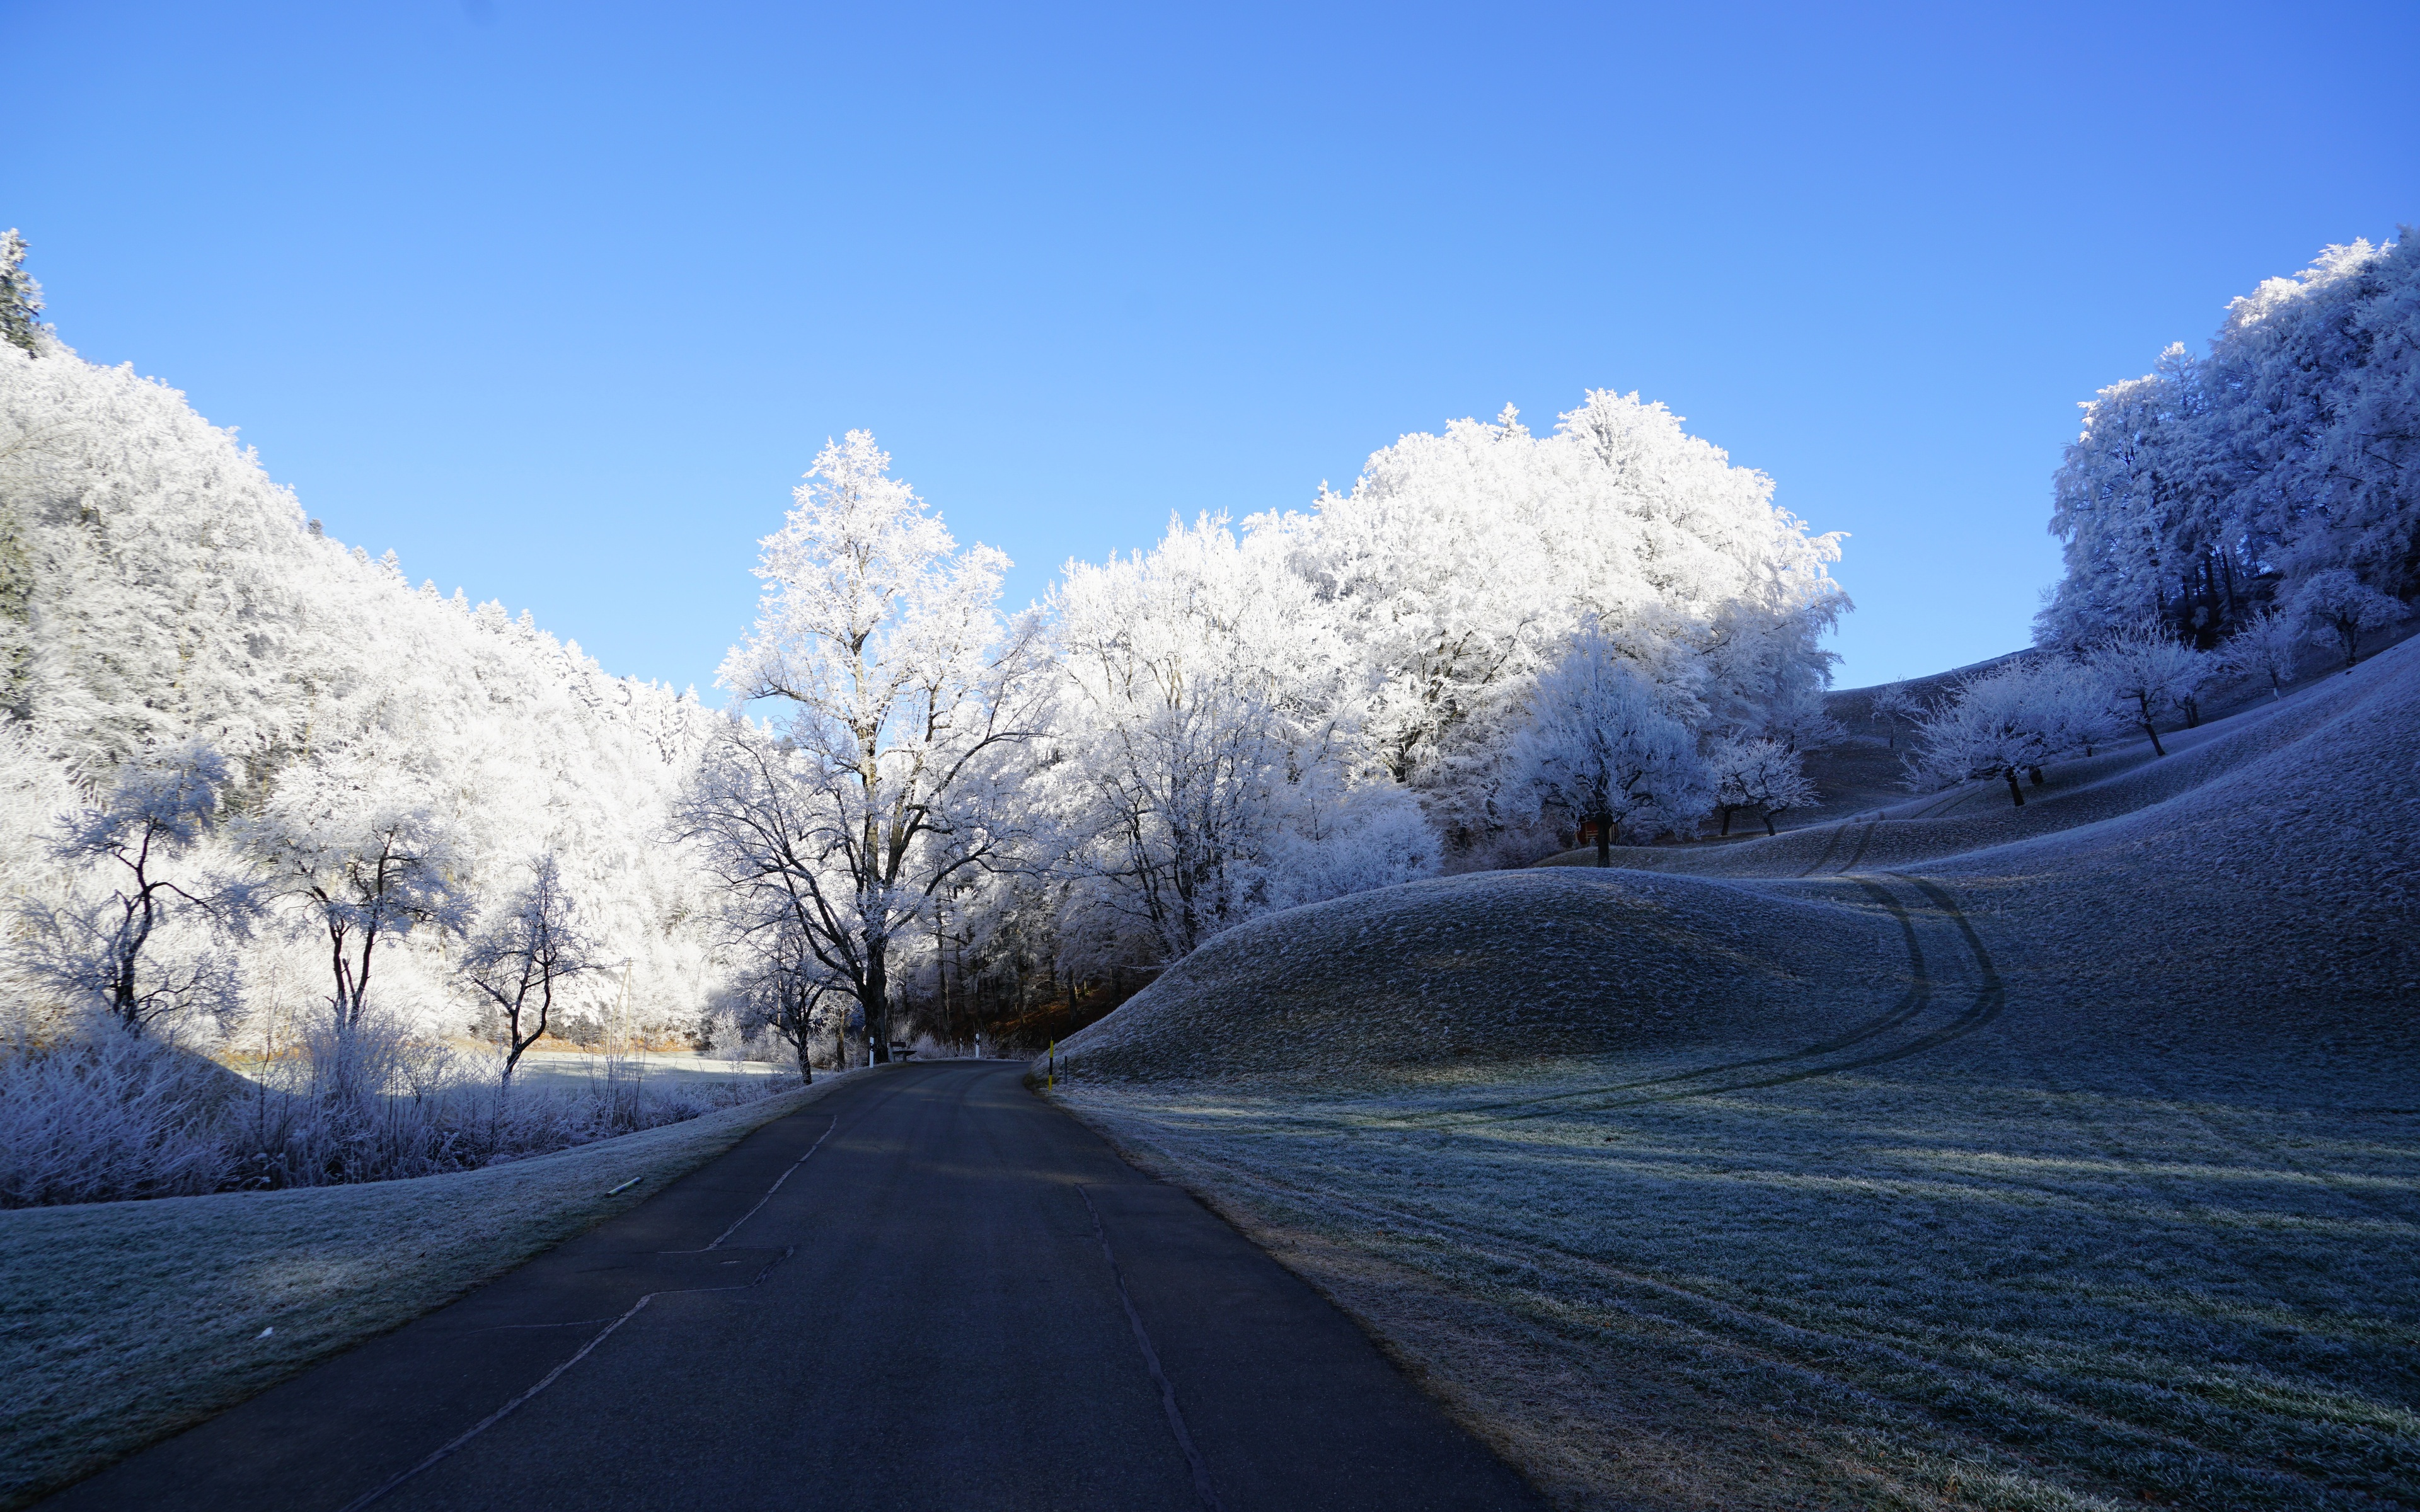 hill-frost-road-trees-8k-g1.jpg